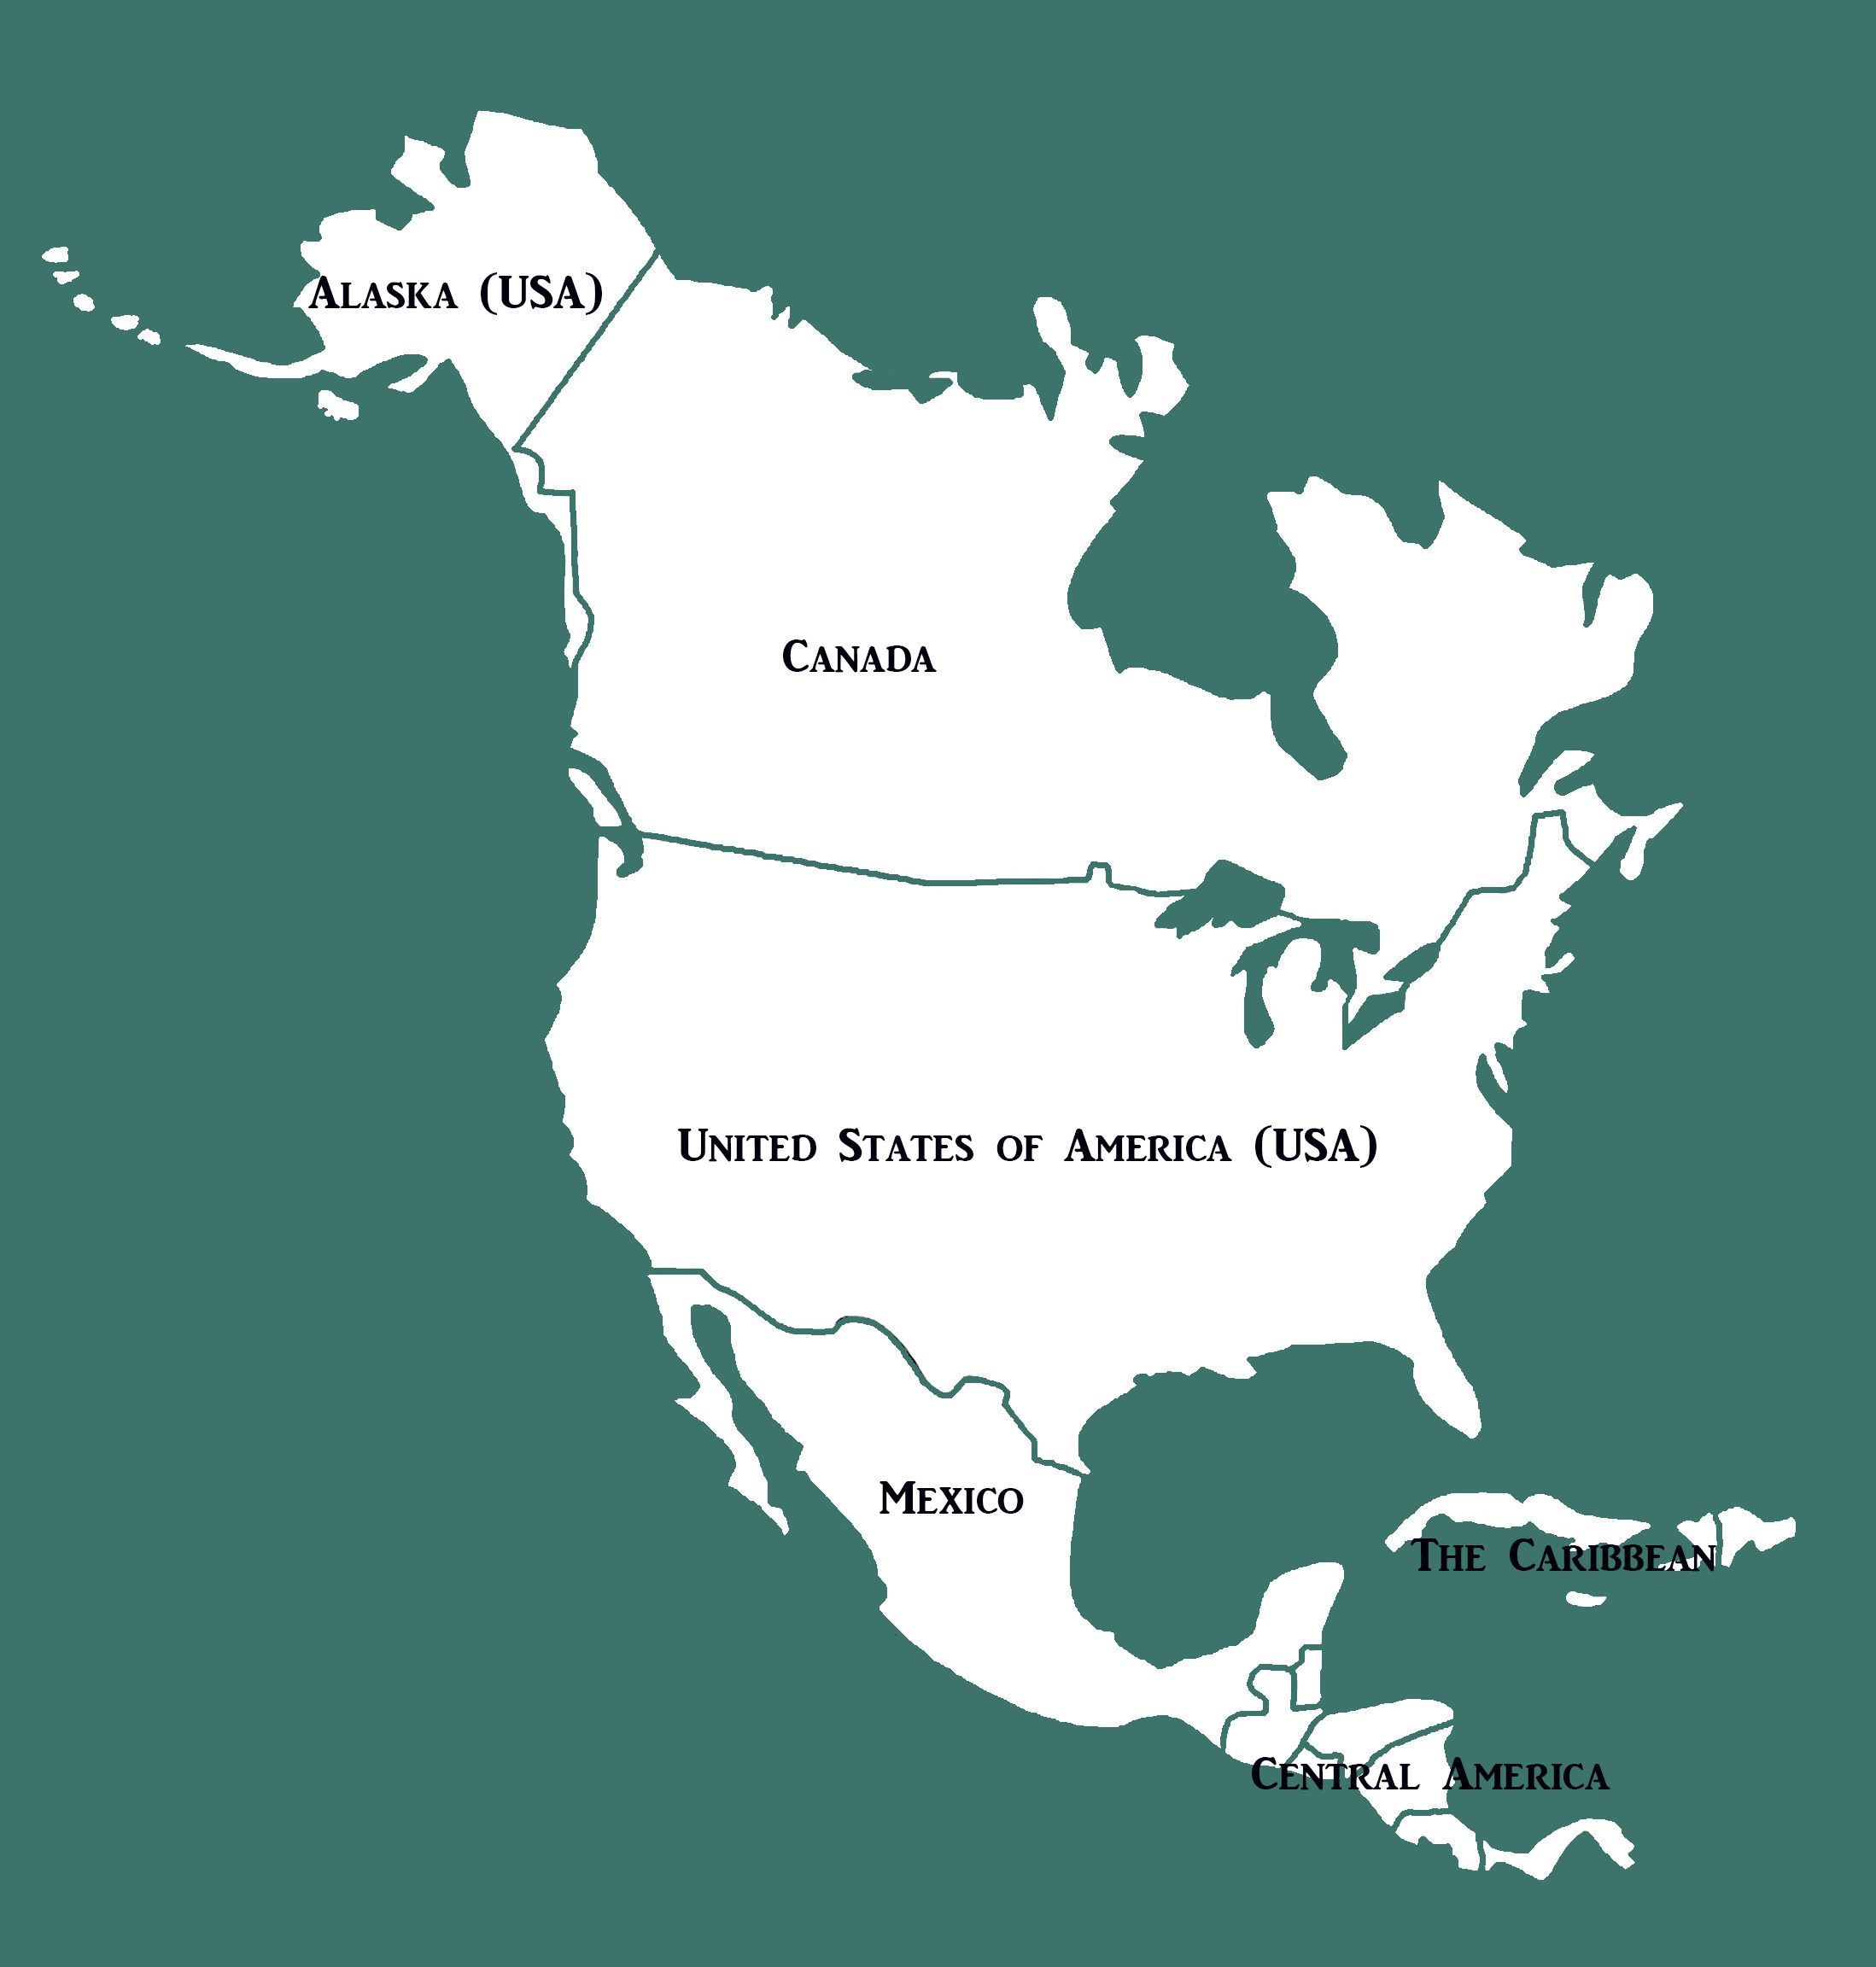 north america map with borders and names croped